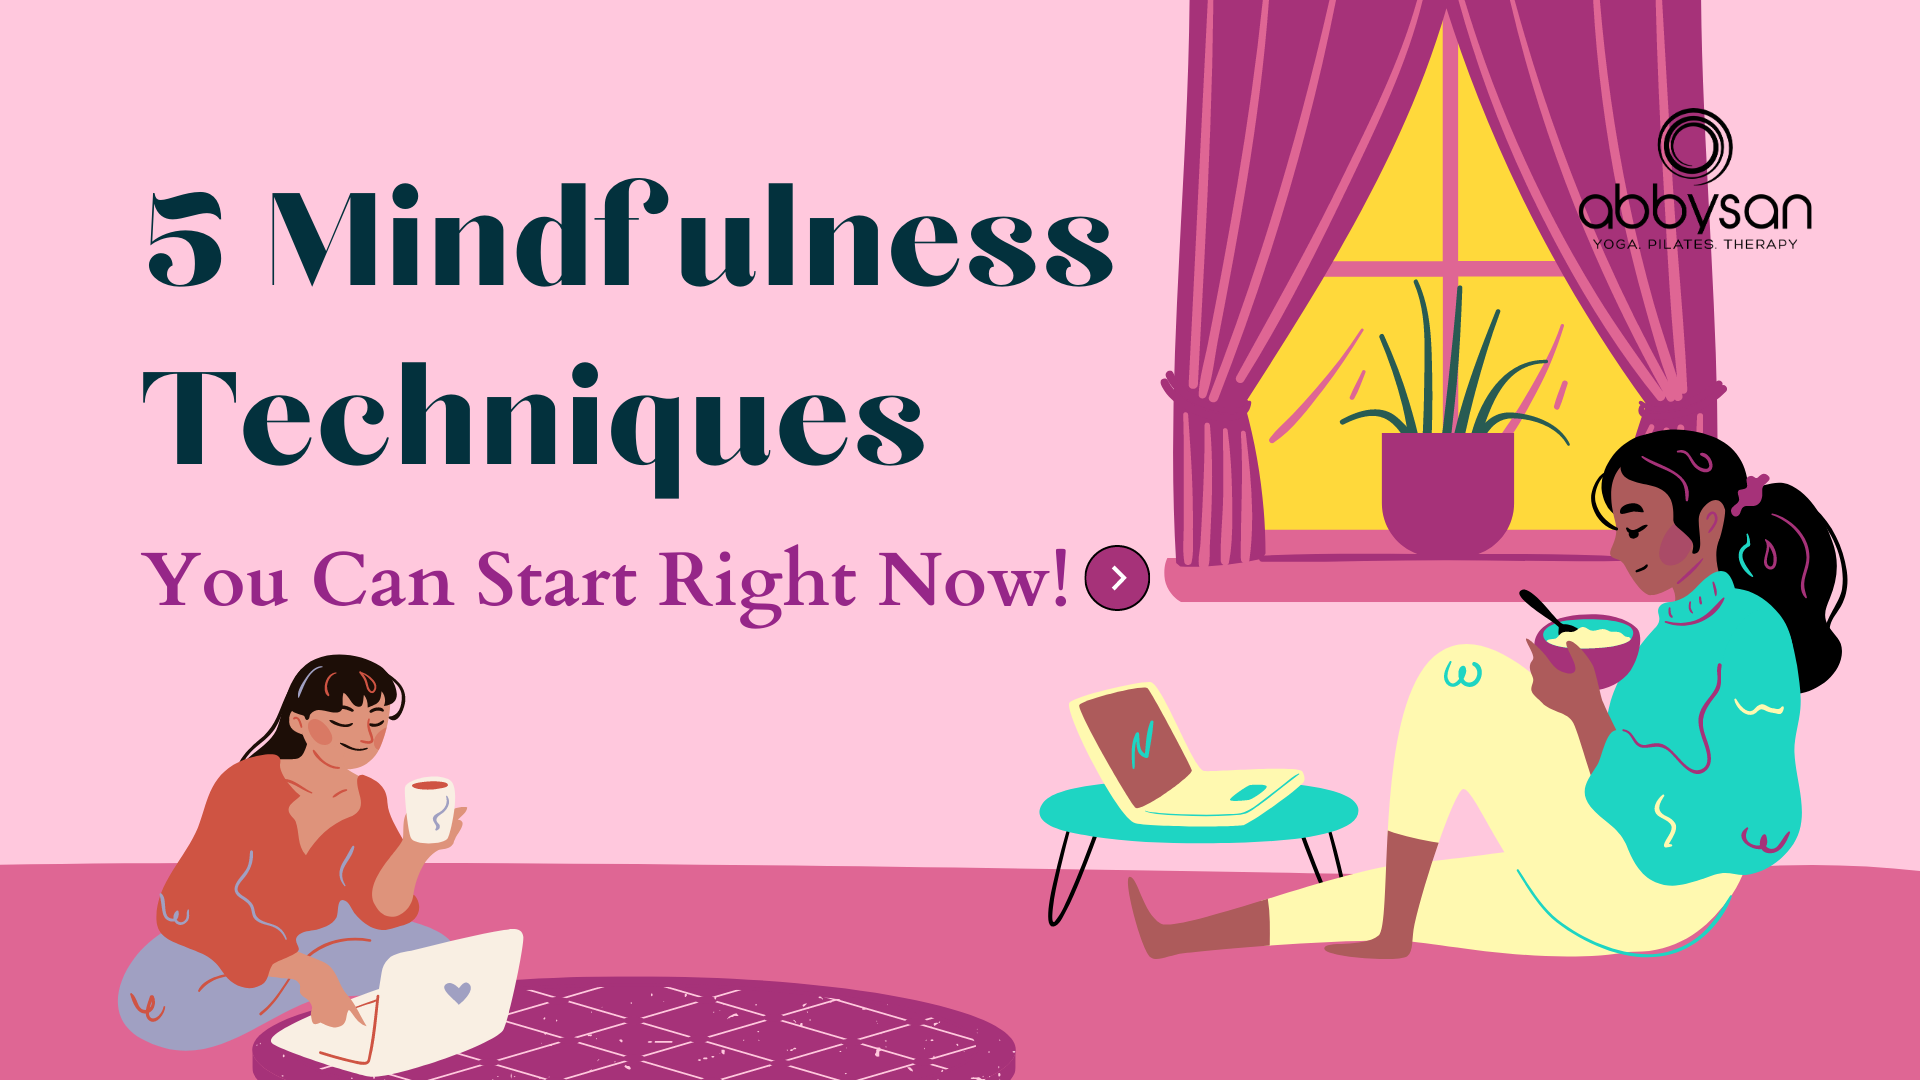 5 Mindfulness Techniques You Can Start Right Now!